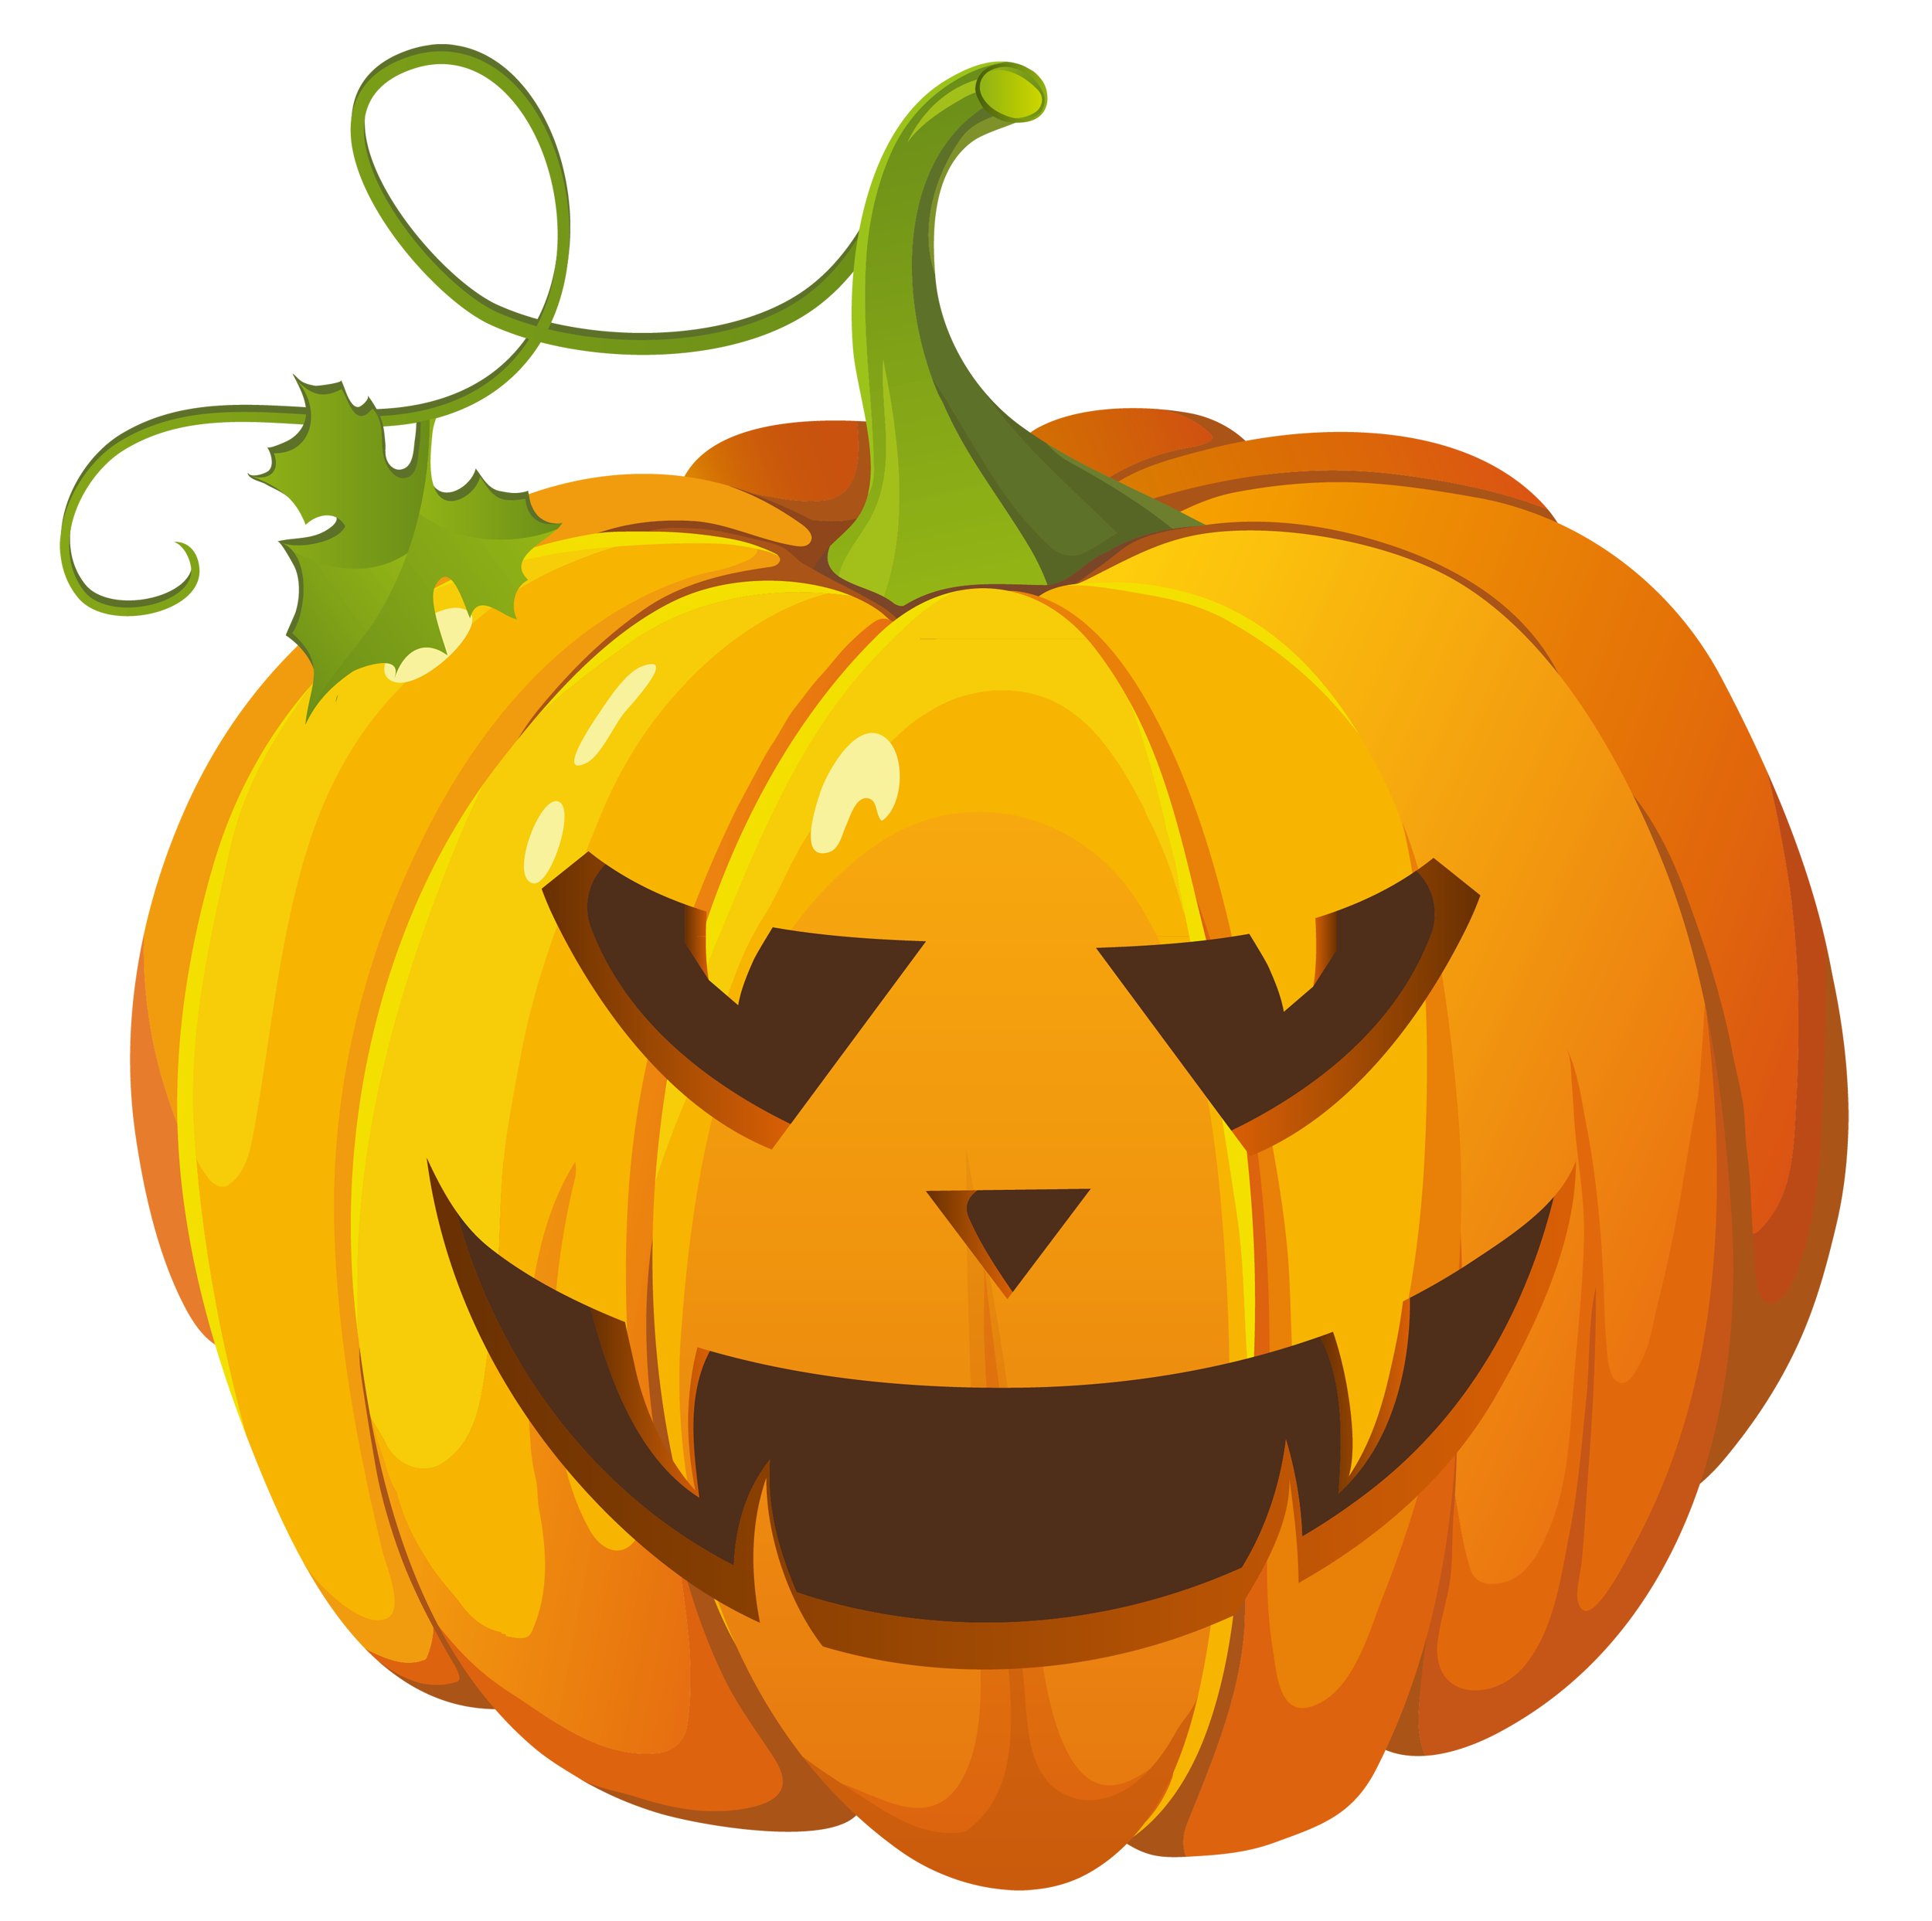 Chevron green orange and pink pumpkin clipart image transparent library Free Halloween Clipart at GetDrawings.com | Free for personal use ... image transparent library